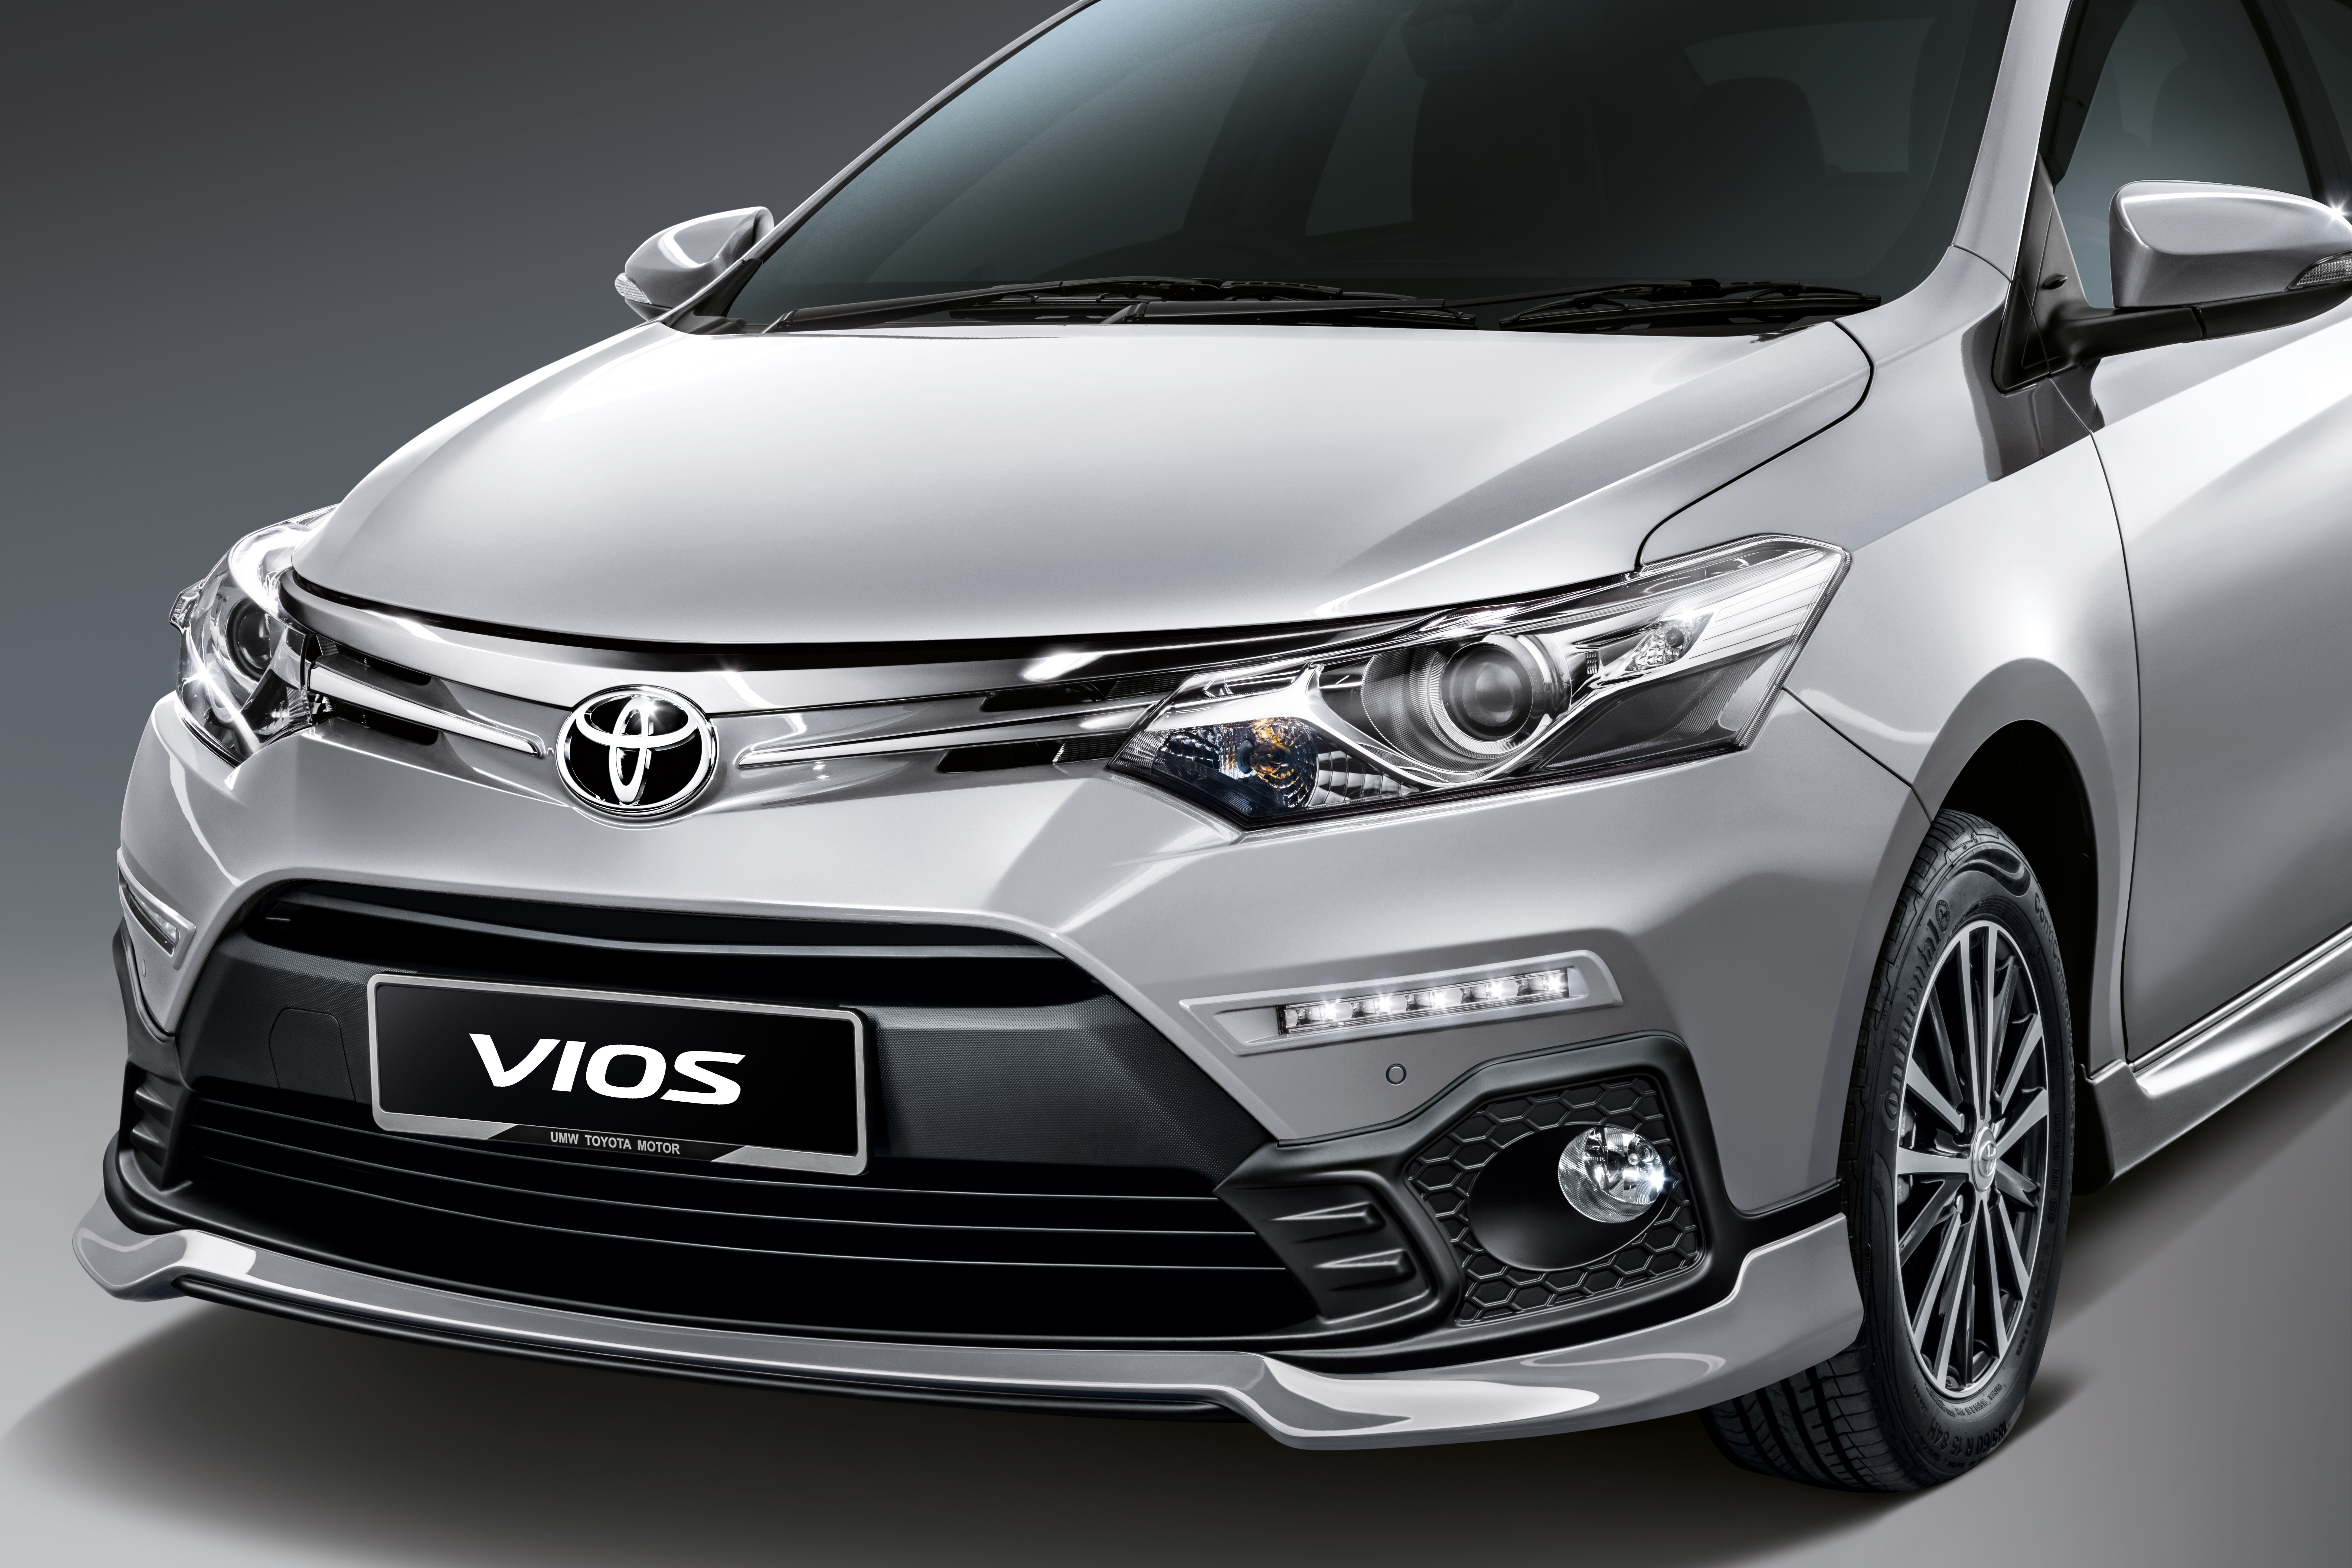 Umw Announces Toyota Vios With More Features Piston My